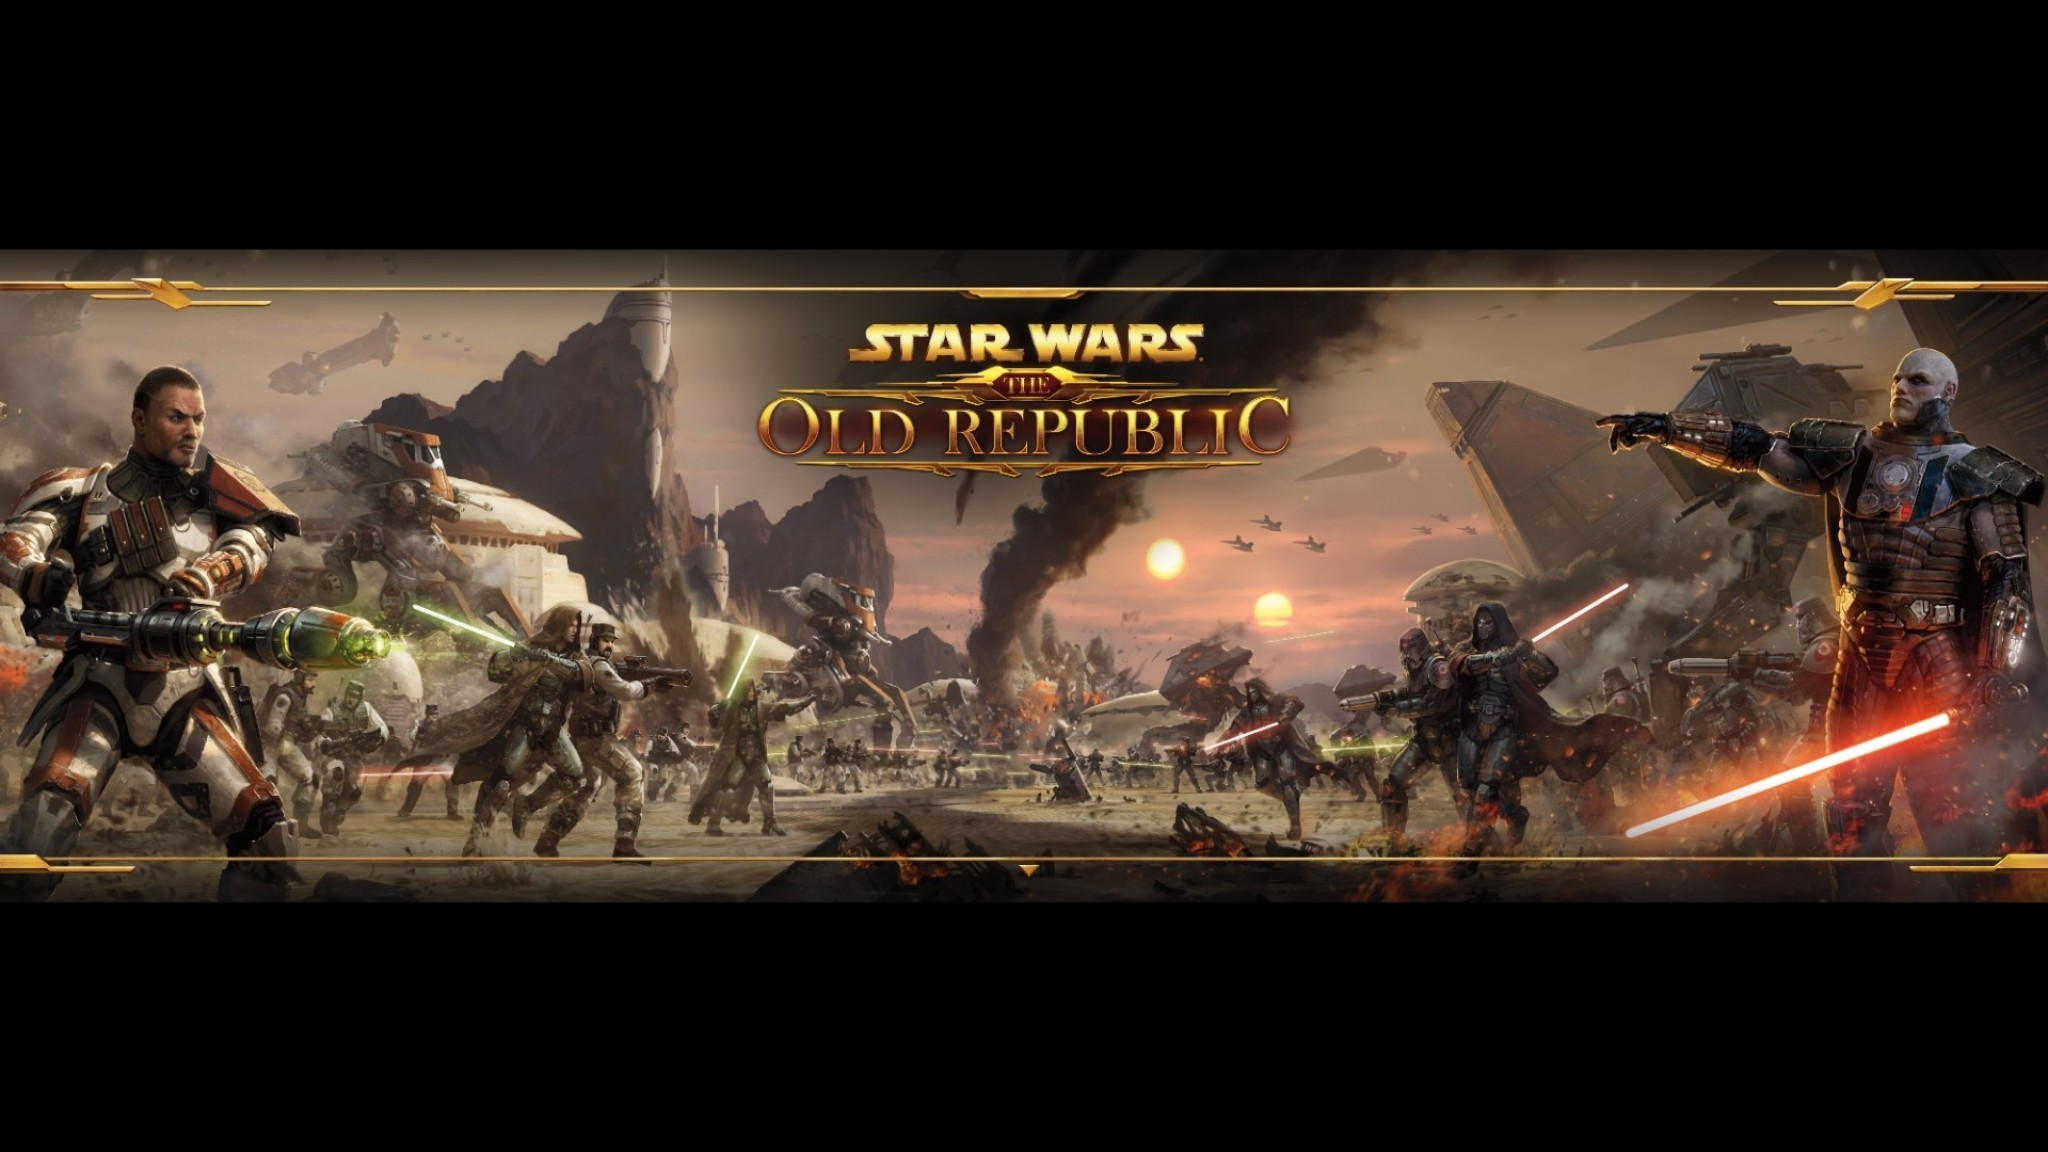 Star Wars: The Old Republic Dual Monitor Wallpaper 2048×1152